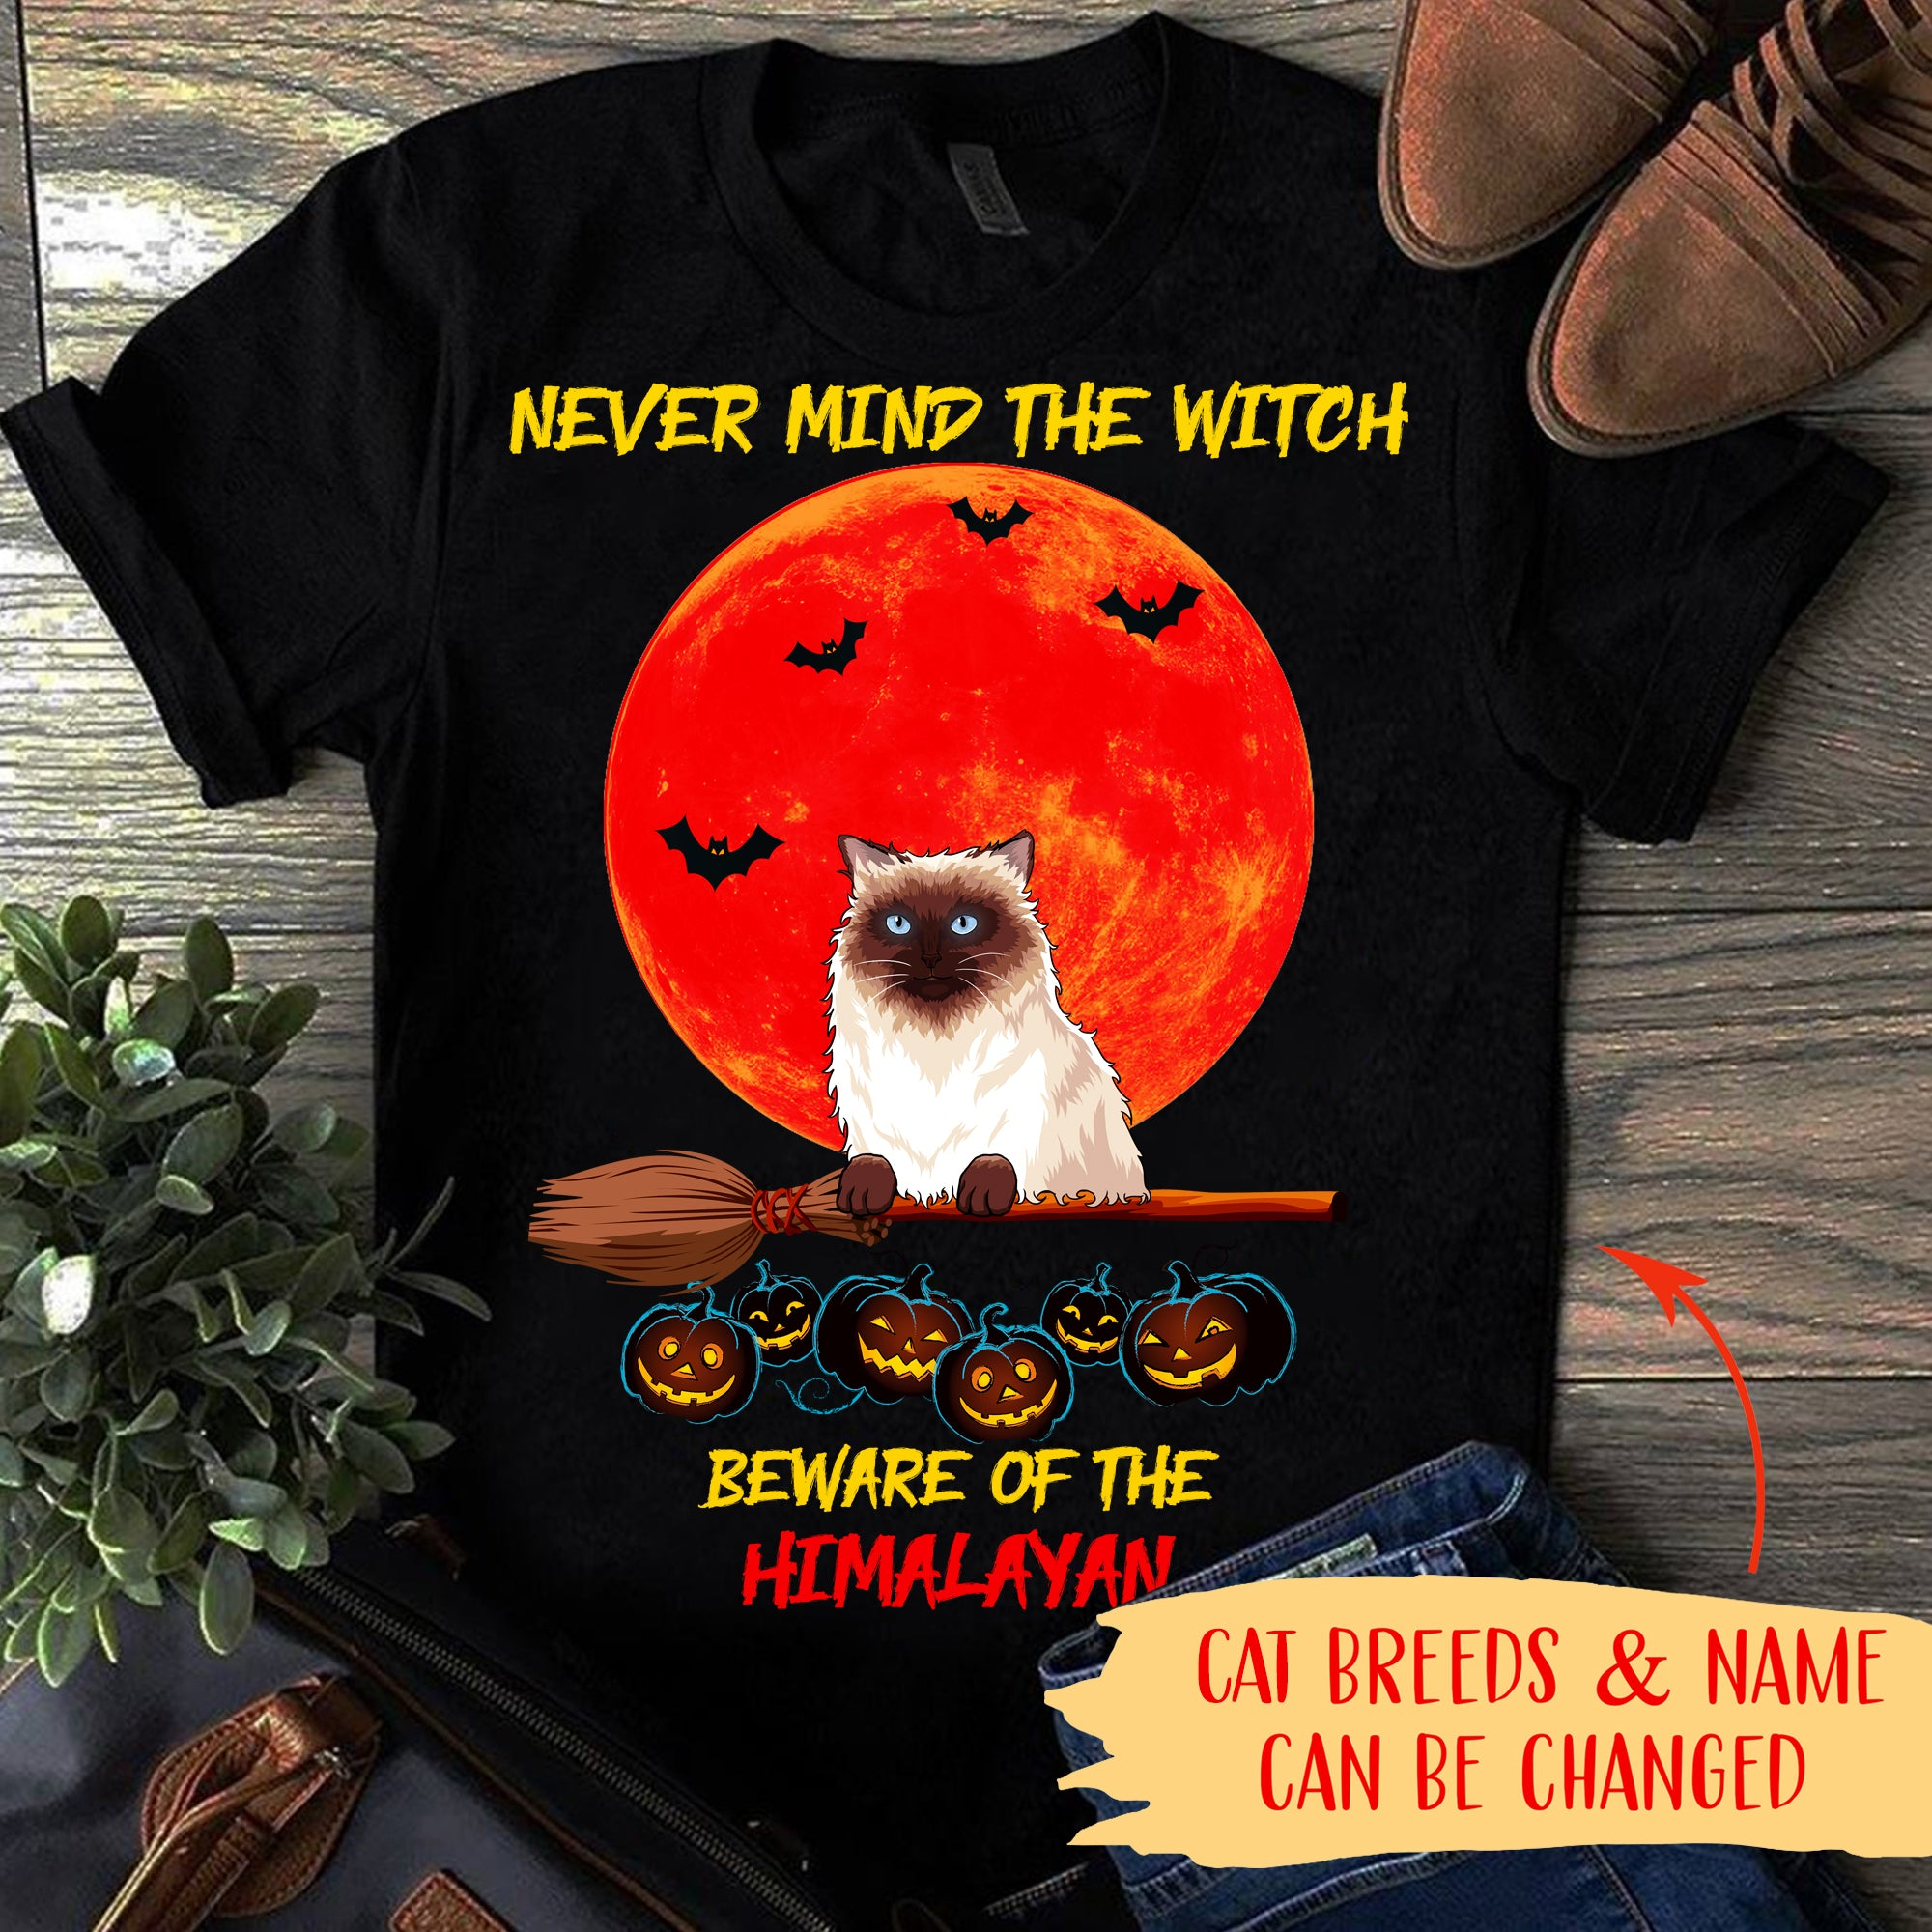 NEVER MIND THE WITCH - CAT - PERSONALIZED CUSTOM T-SHIRT